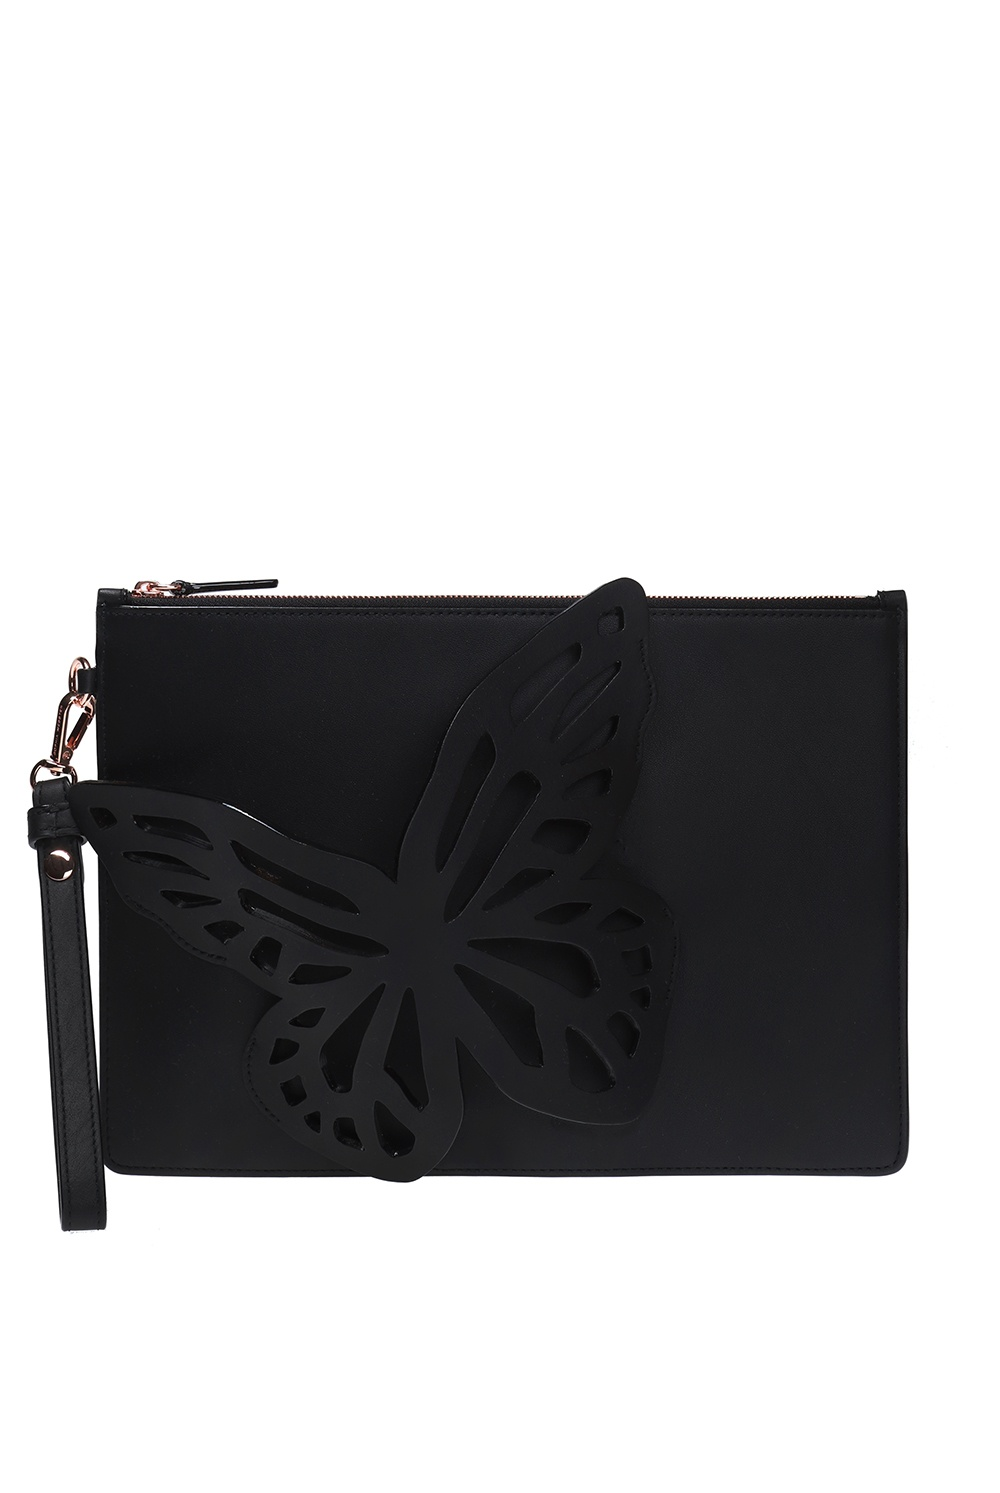 Sophia Webster 'Flossy' clutch